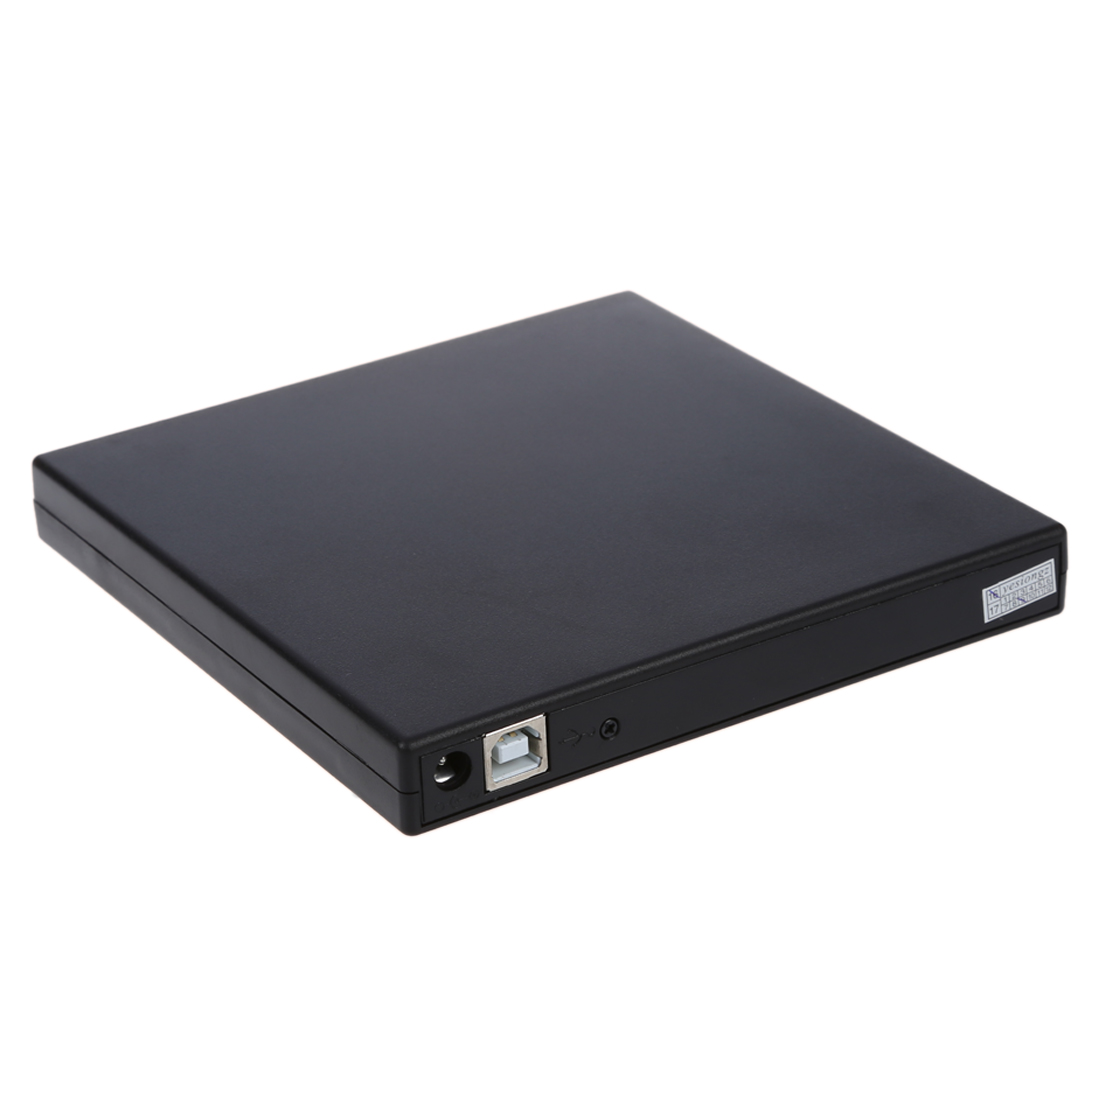 USB External Blu-ray BD-R BD-ROM Combo DVD RW Burner Drive Black bluray player external usb 3 0 dvd drive blu ray 3d 25g 50g bd rom cd dvd rw burner writer recorder for windows 10 mac os linux